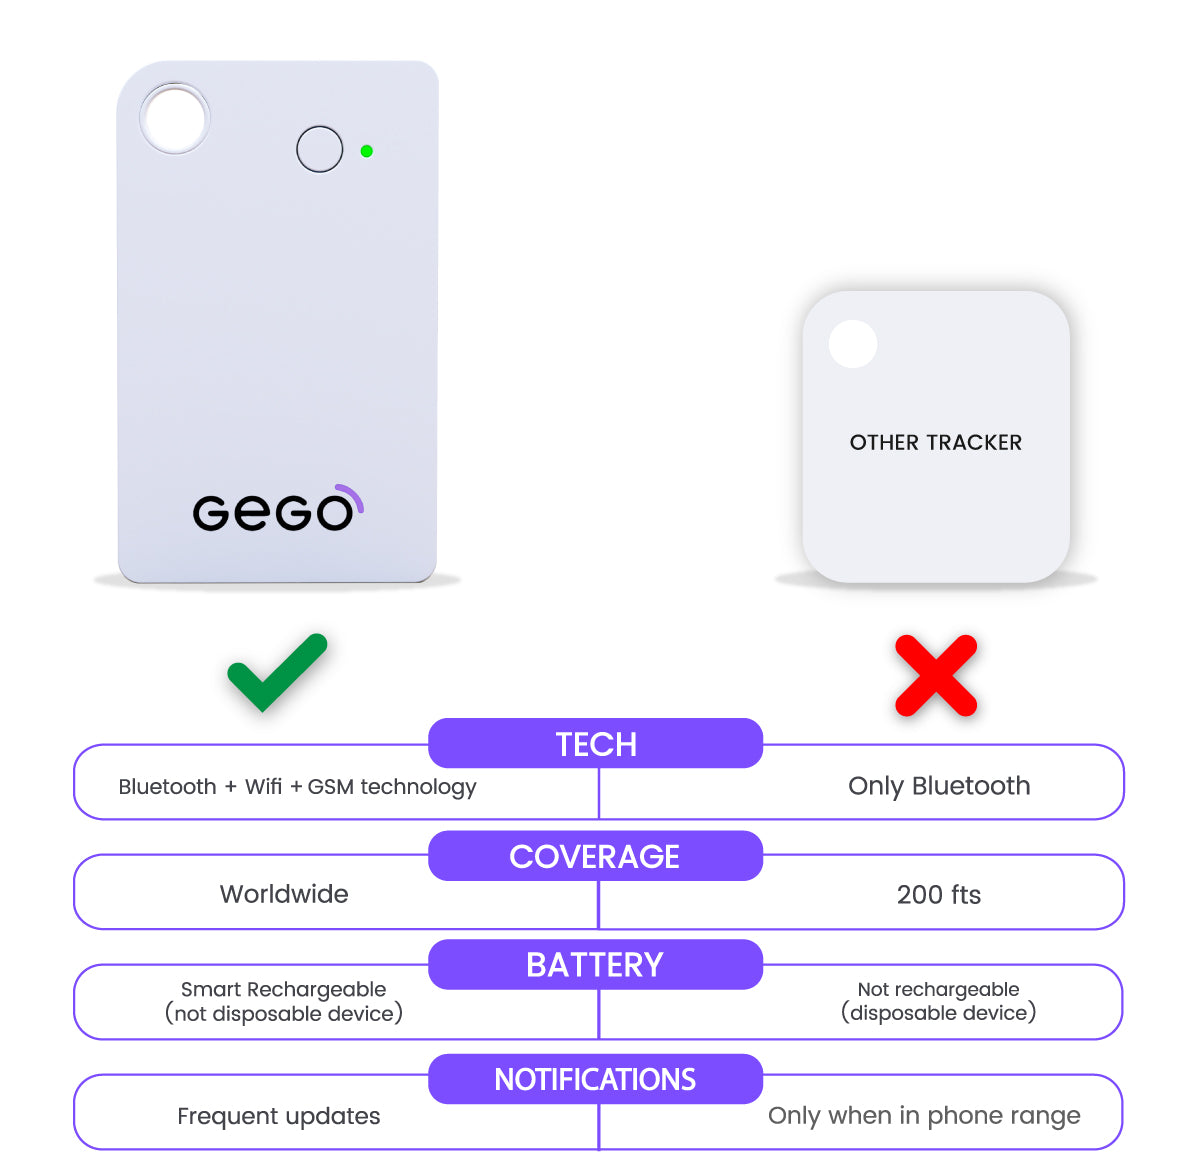 GEGO vs bluetooth trackers